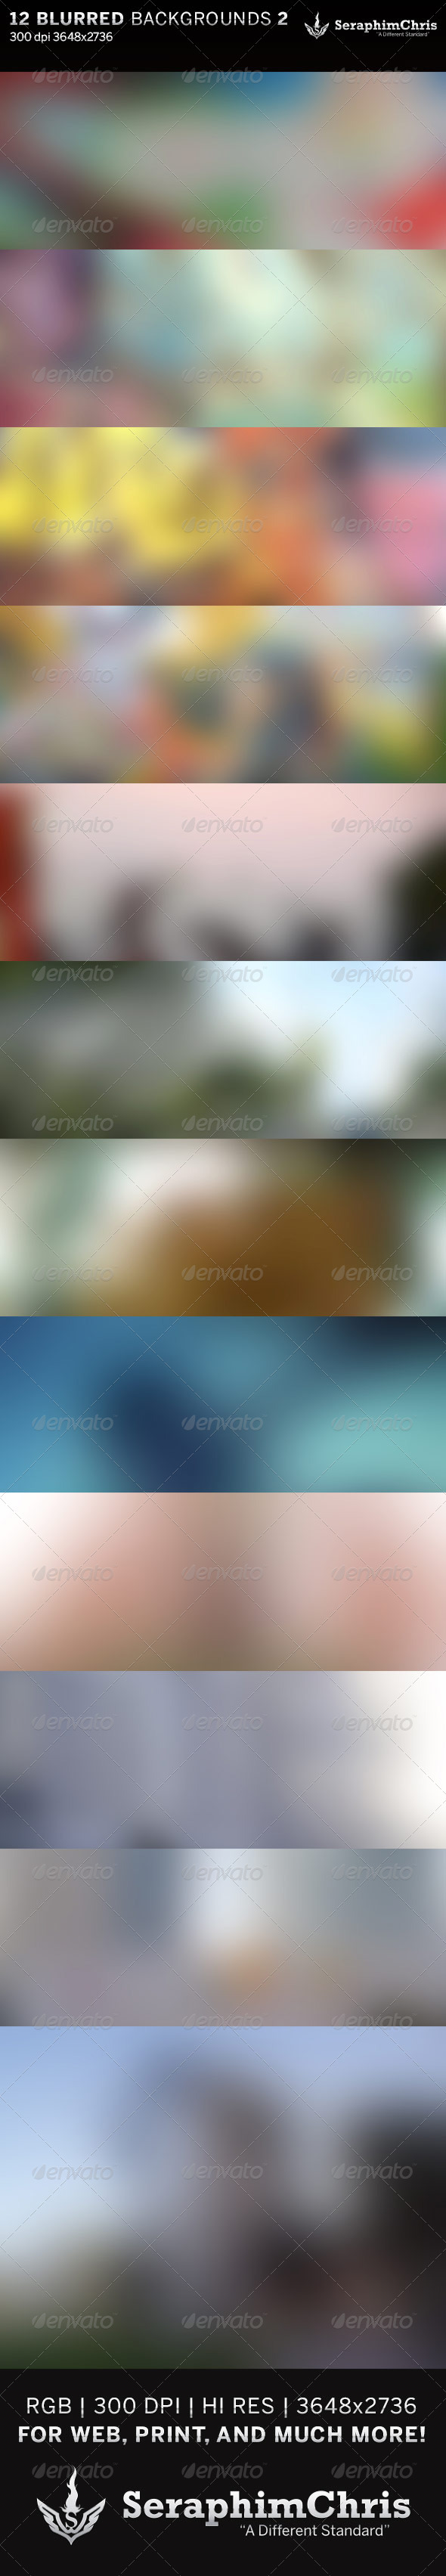 GraphicRiver 12 Abstract Blurred HD Backgrounds 6416166